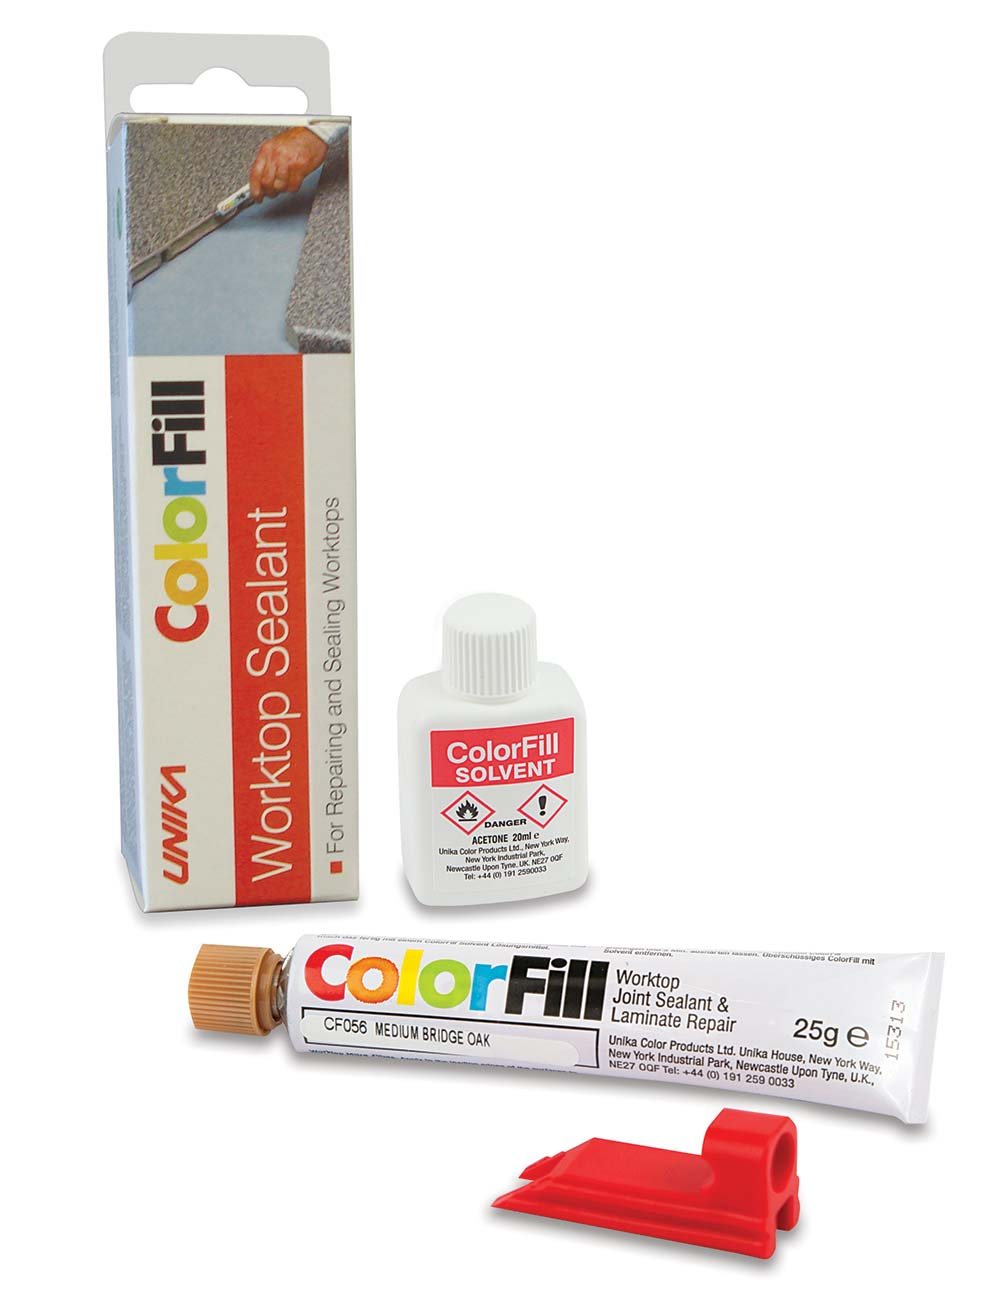 ColorFill Worktop Joint Sealant